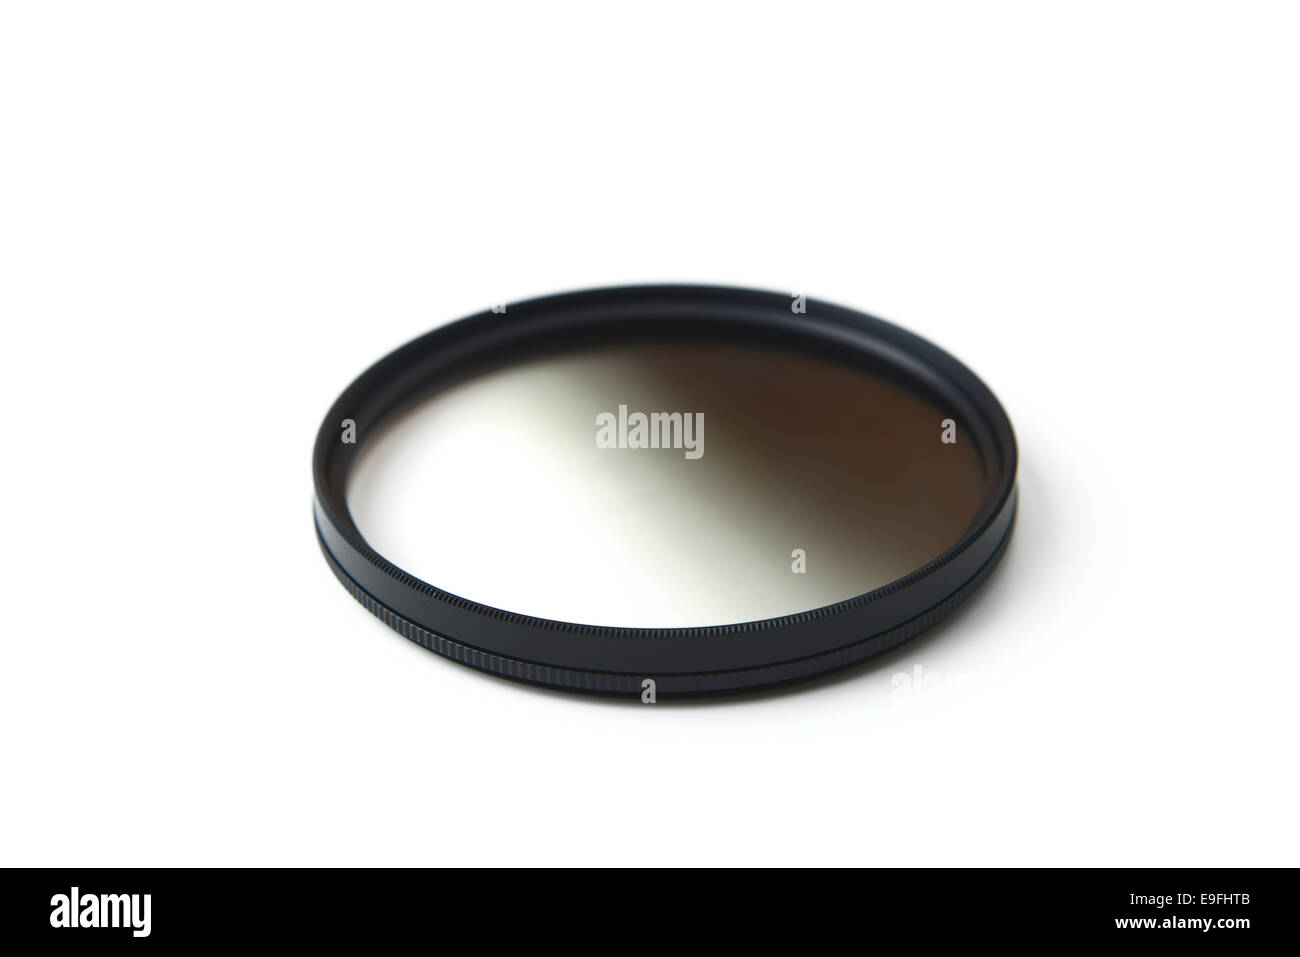 Camera Lenses ND Filter - Stock Image